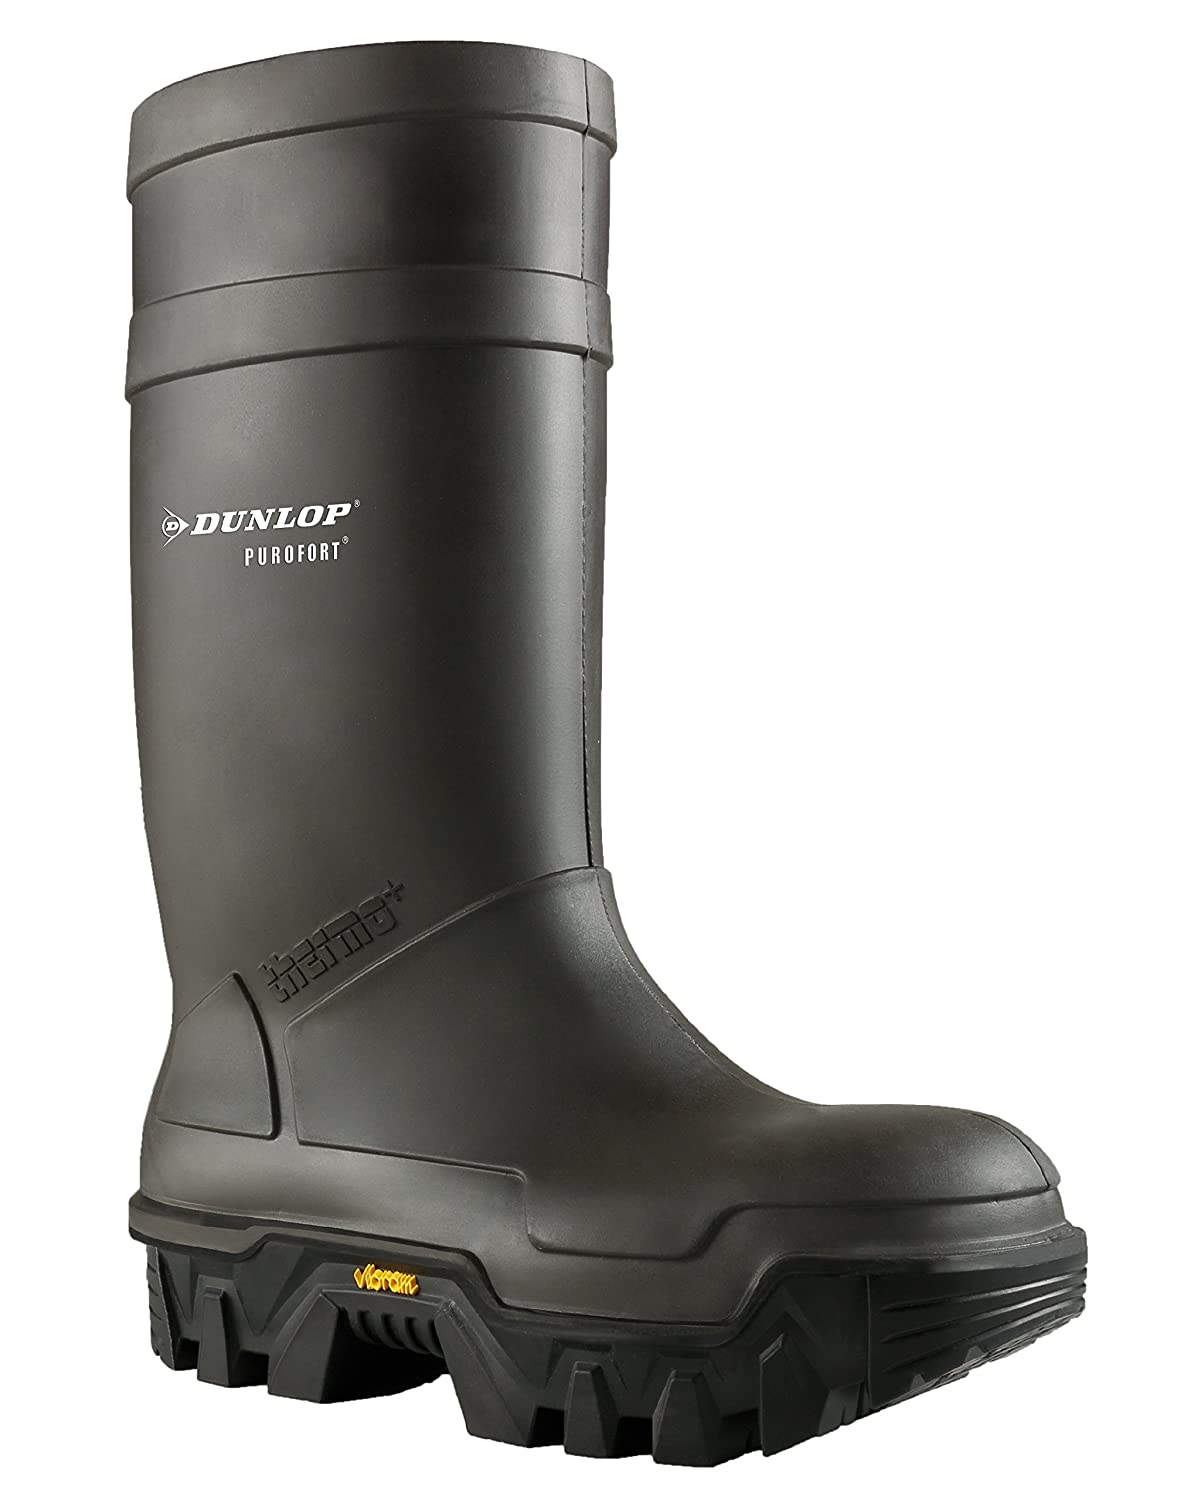 Dunlop Purofort Explorer Thermo C922033 Full Sécurité Botte, S5 - C922033 Thermo 43 EU|Noir/Gris e95a58